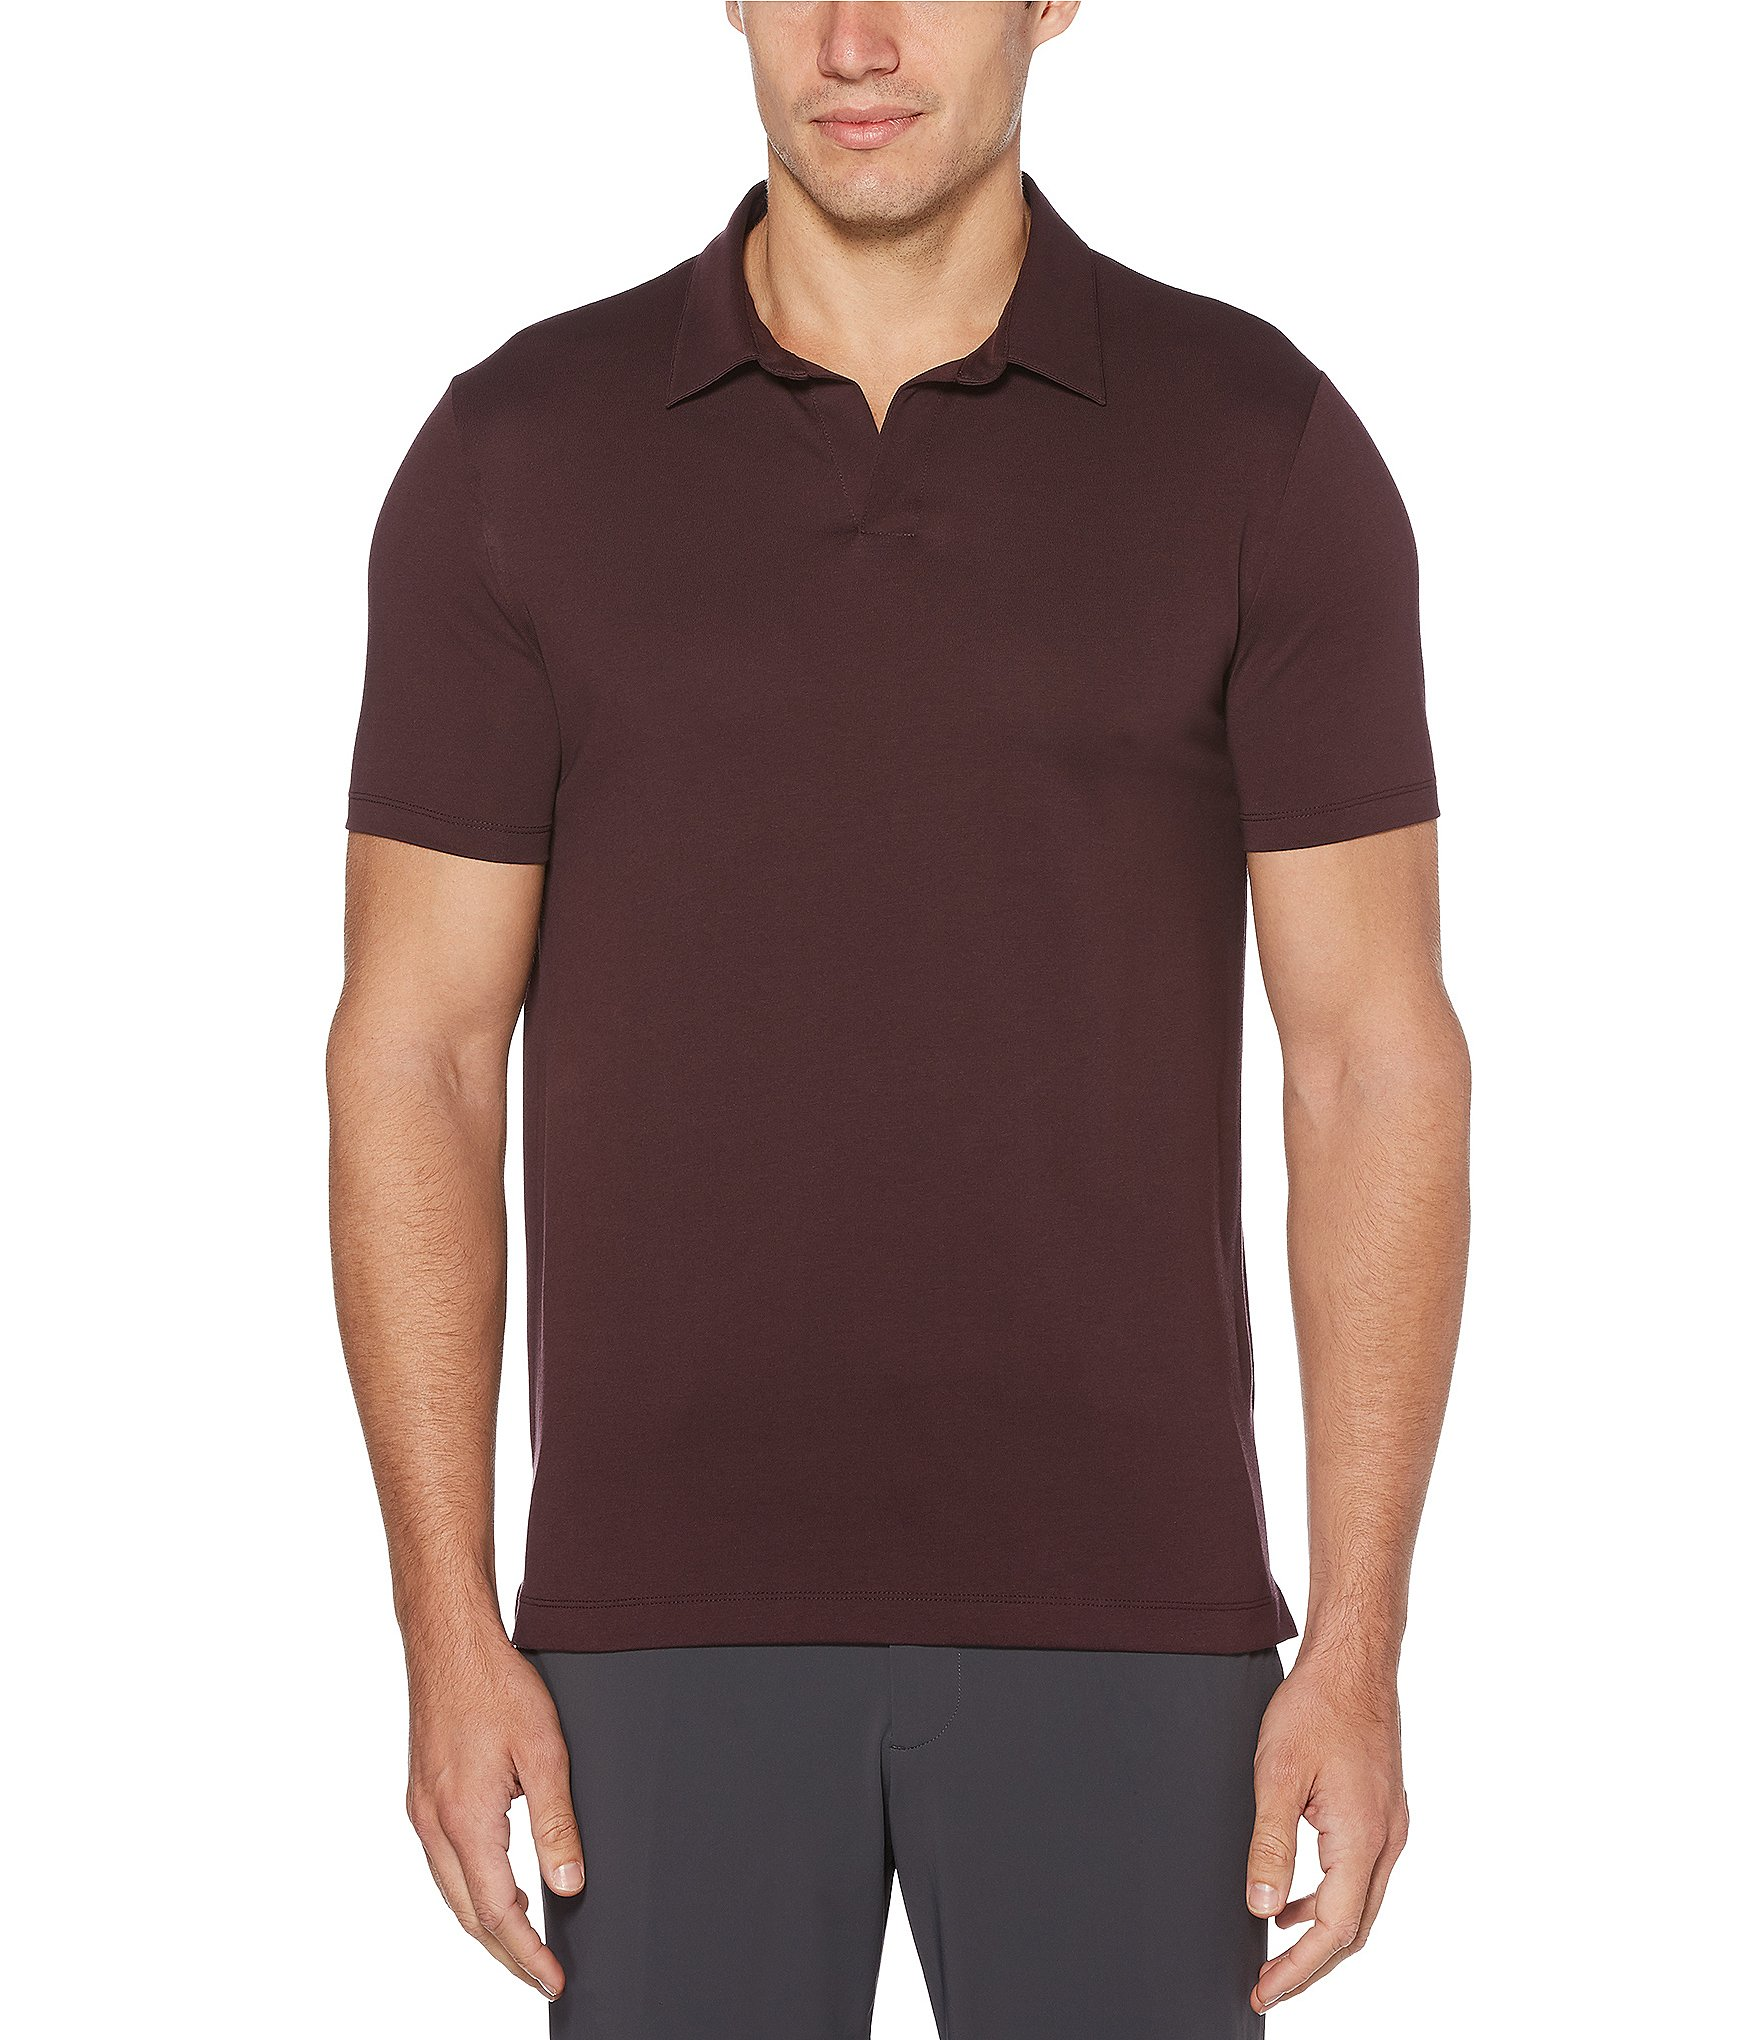 fab87a2558de Men's Big and Tall Clothing | Dillard's